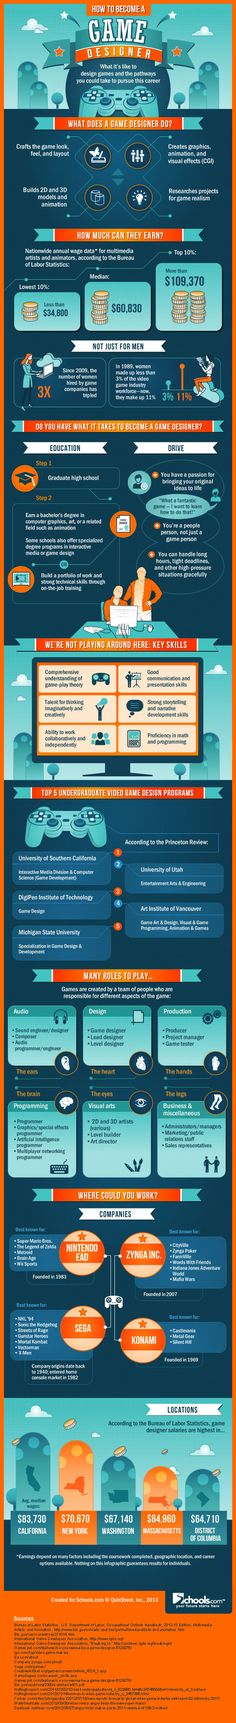 How to Become a Game Designer | Business 2 Community